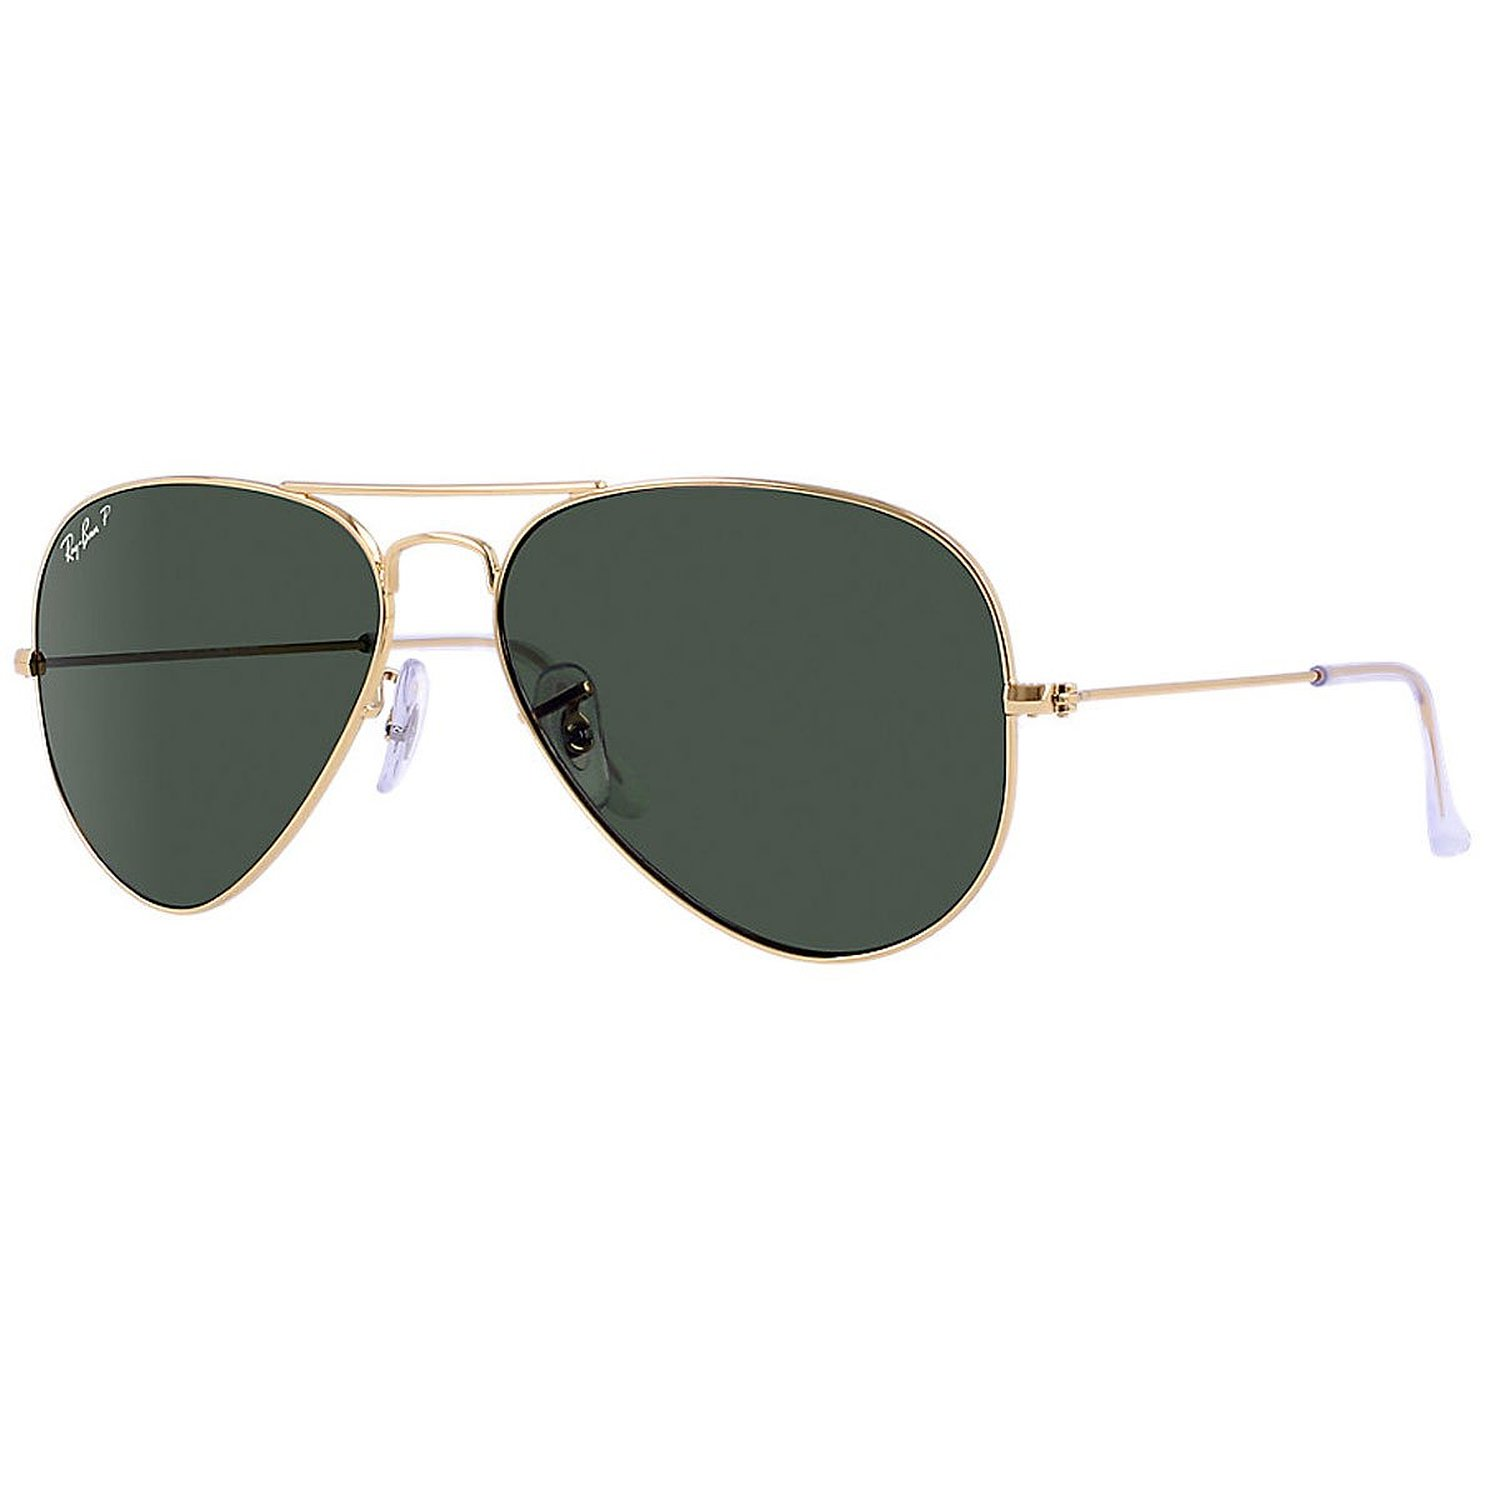 Ray Ban Large Metal Polarized Sunglasses